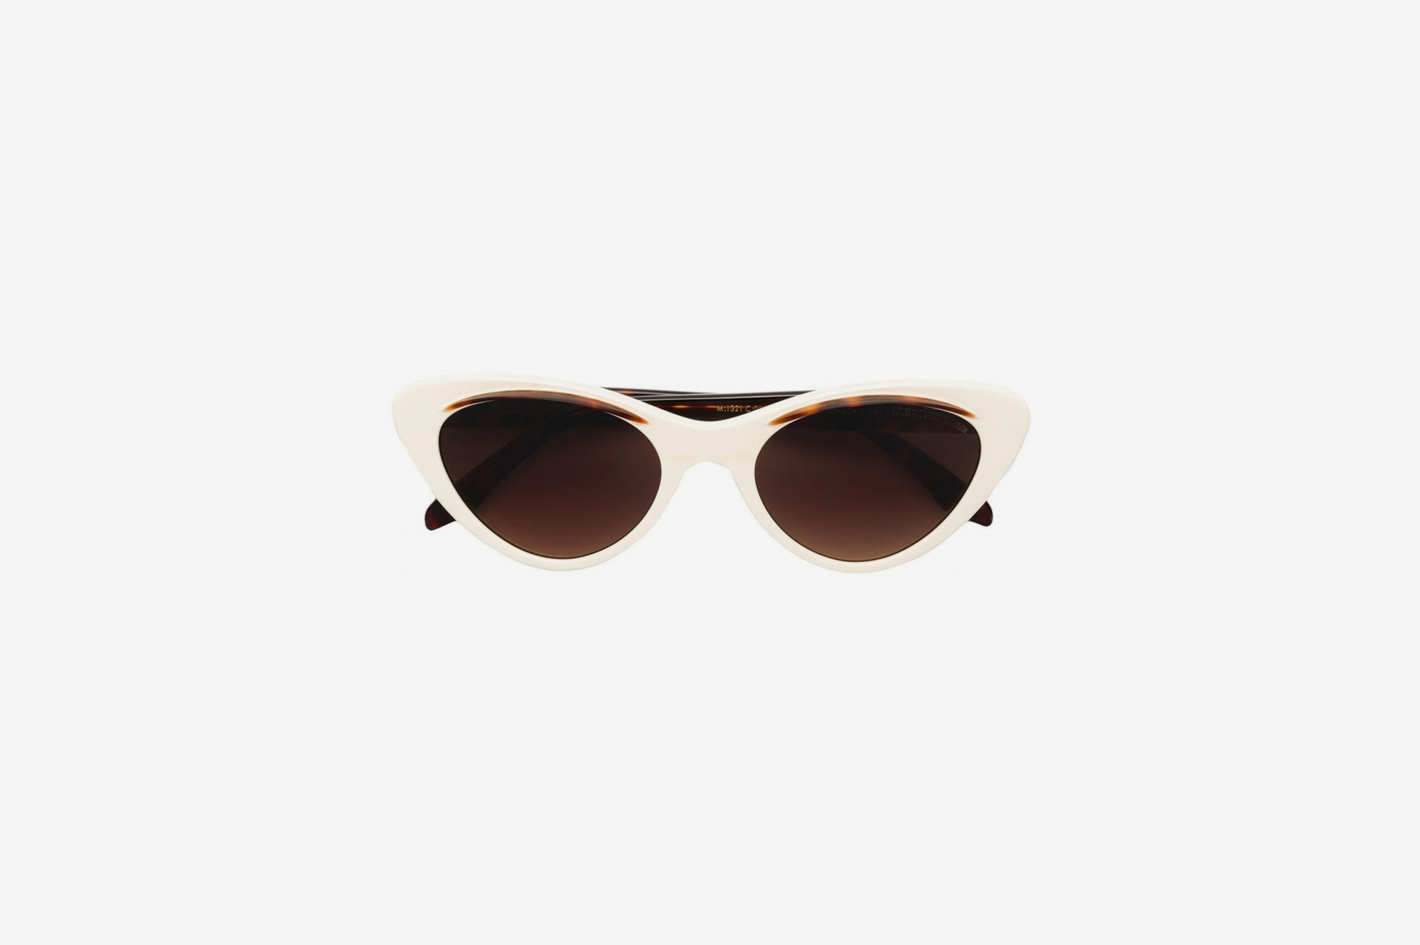 Cutler & Gross Tortoise Shell Sunglasses